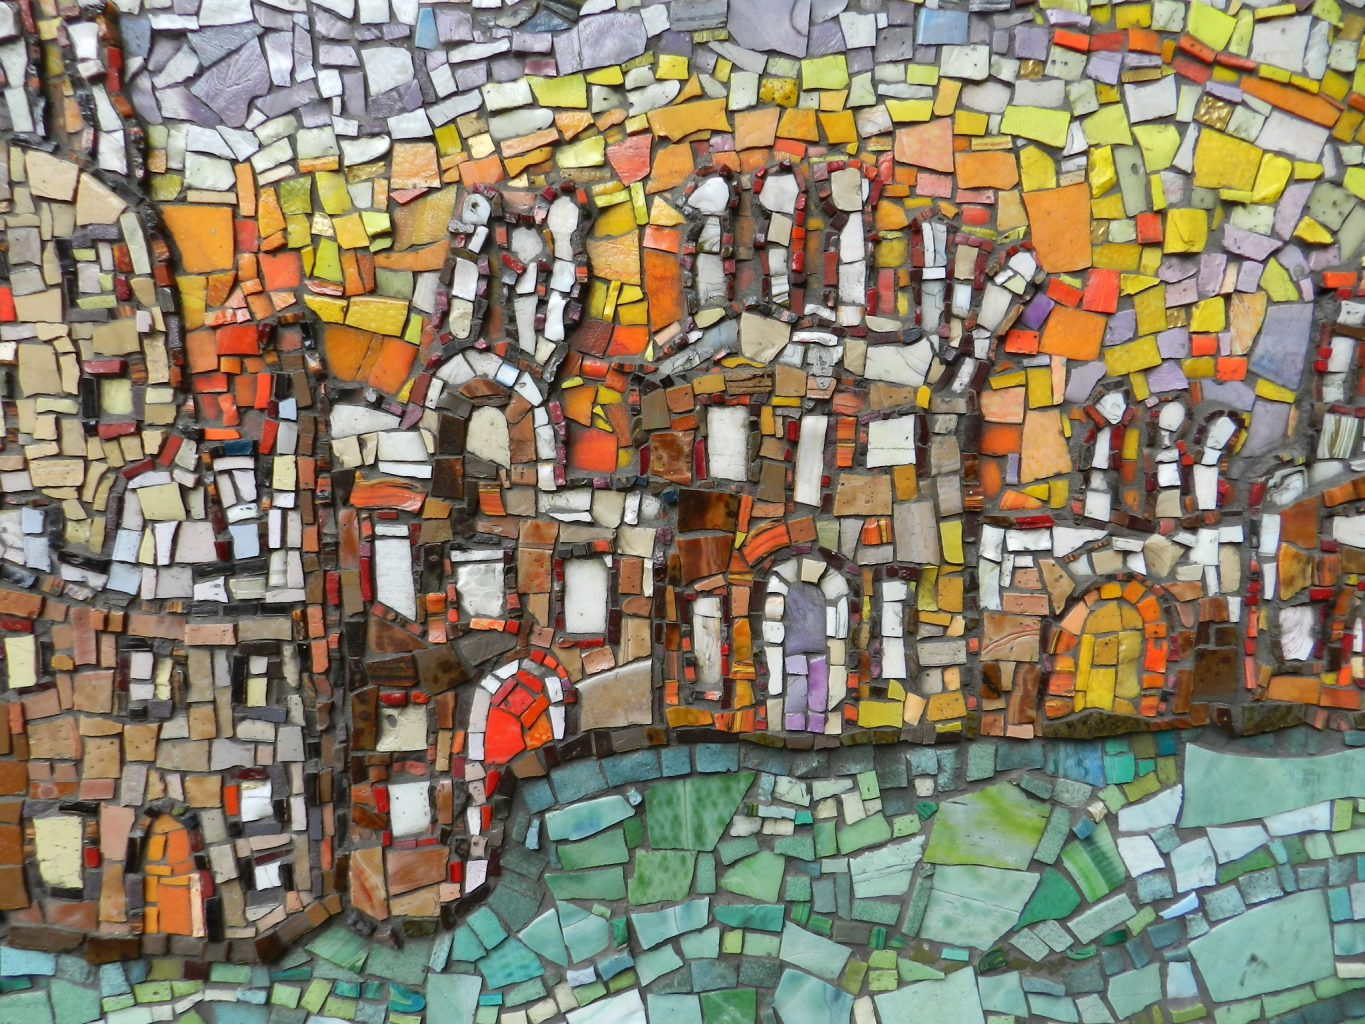 Jude Burkhauser mosaic detail, Glasgow Central Station. Mosaics of Scotland.